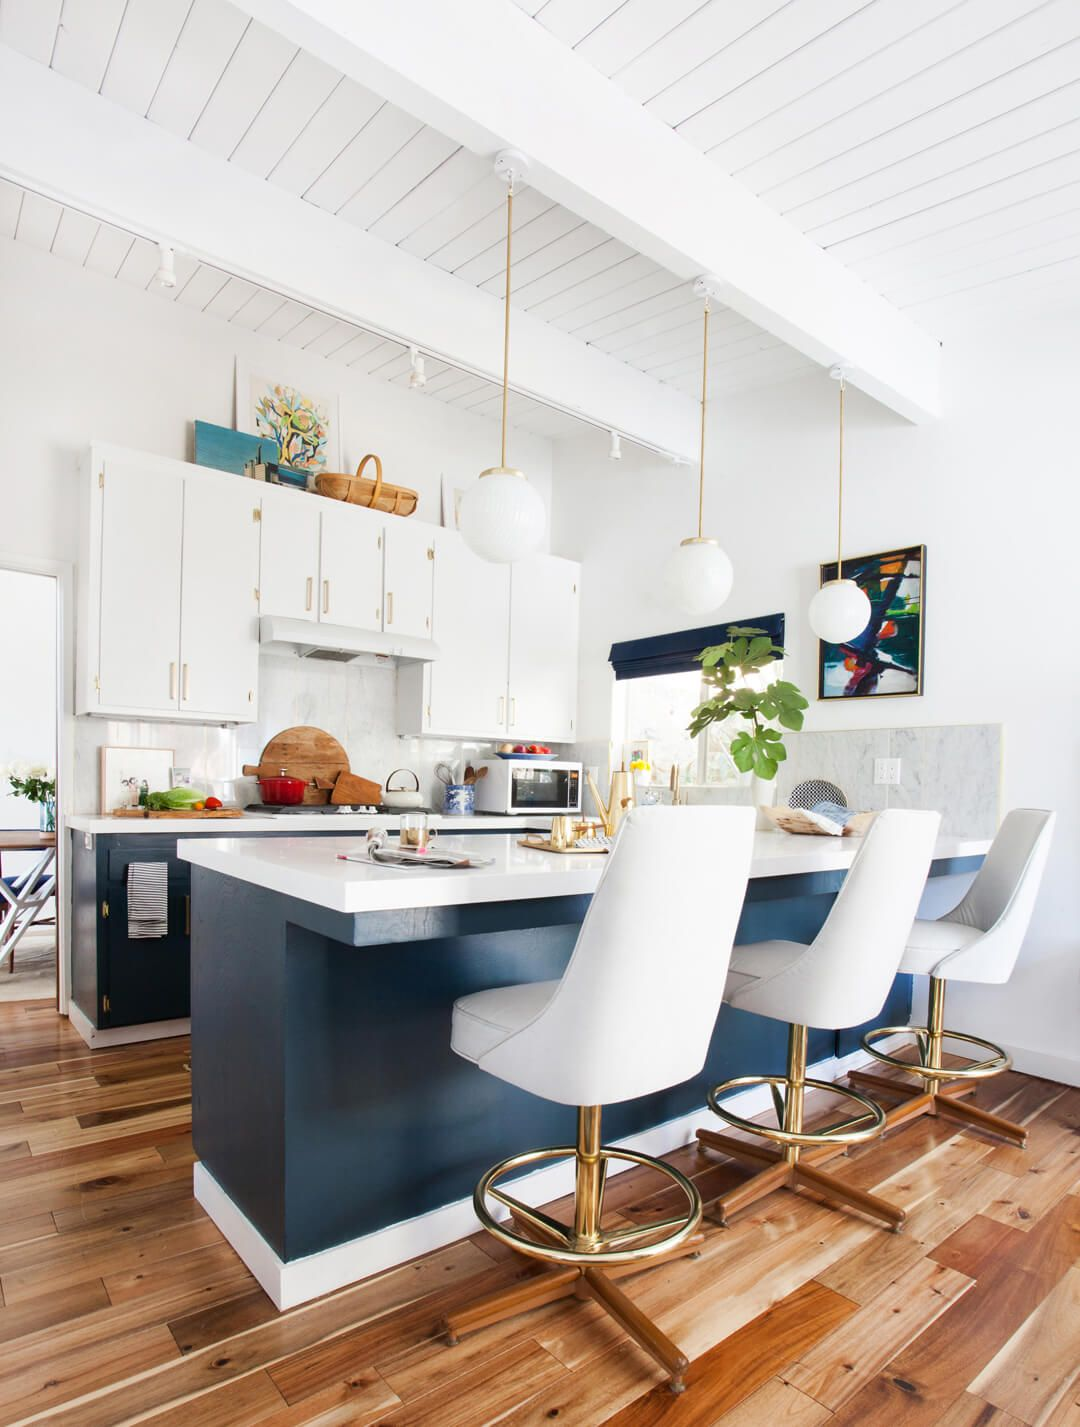 14 ideas for decorating space above kitchen cabinets how to design rh housebeautiful com